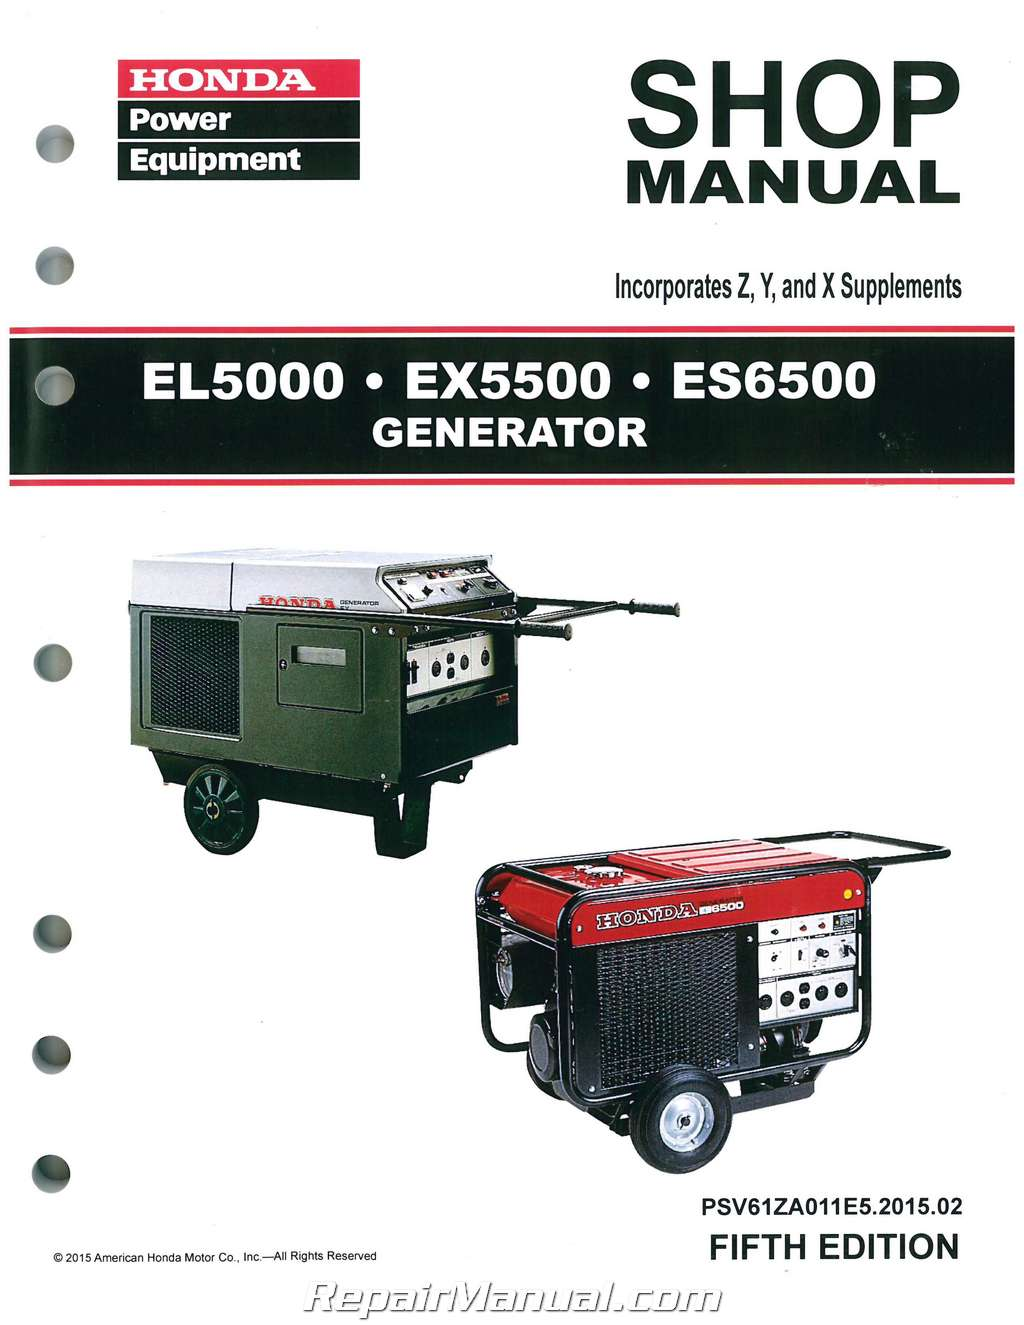 Honda el5000 es6500 ex5500 generator shop manual swarovskicordoba Gallery